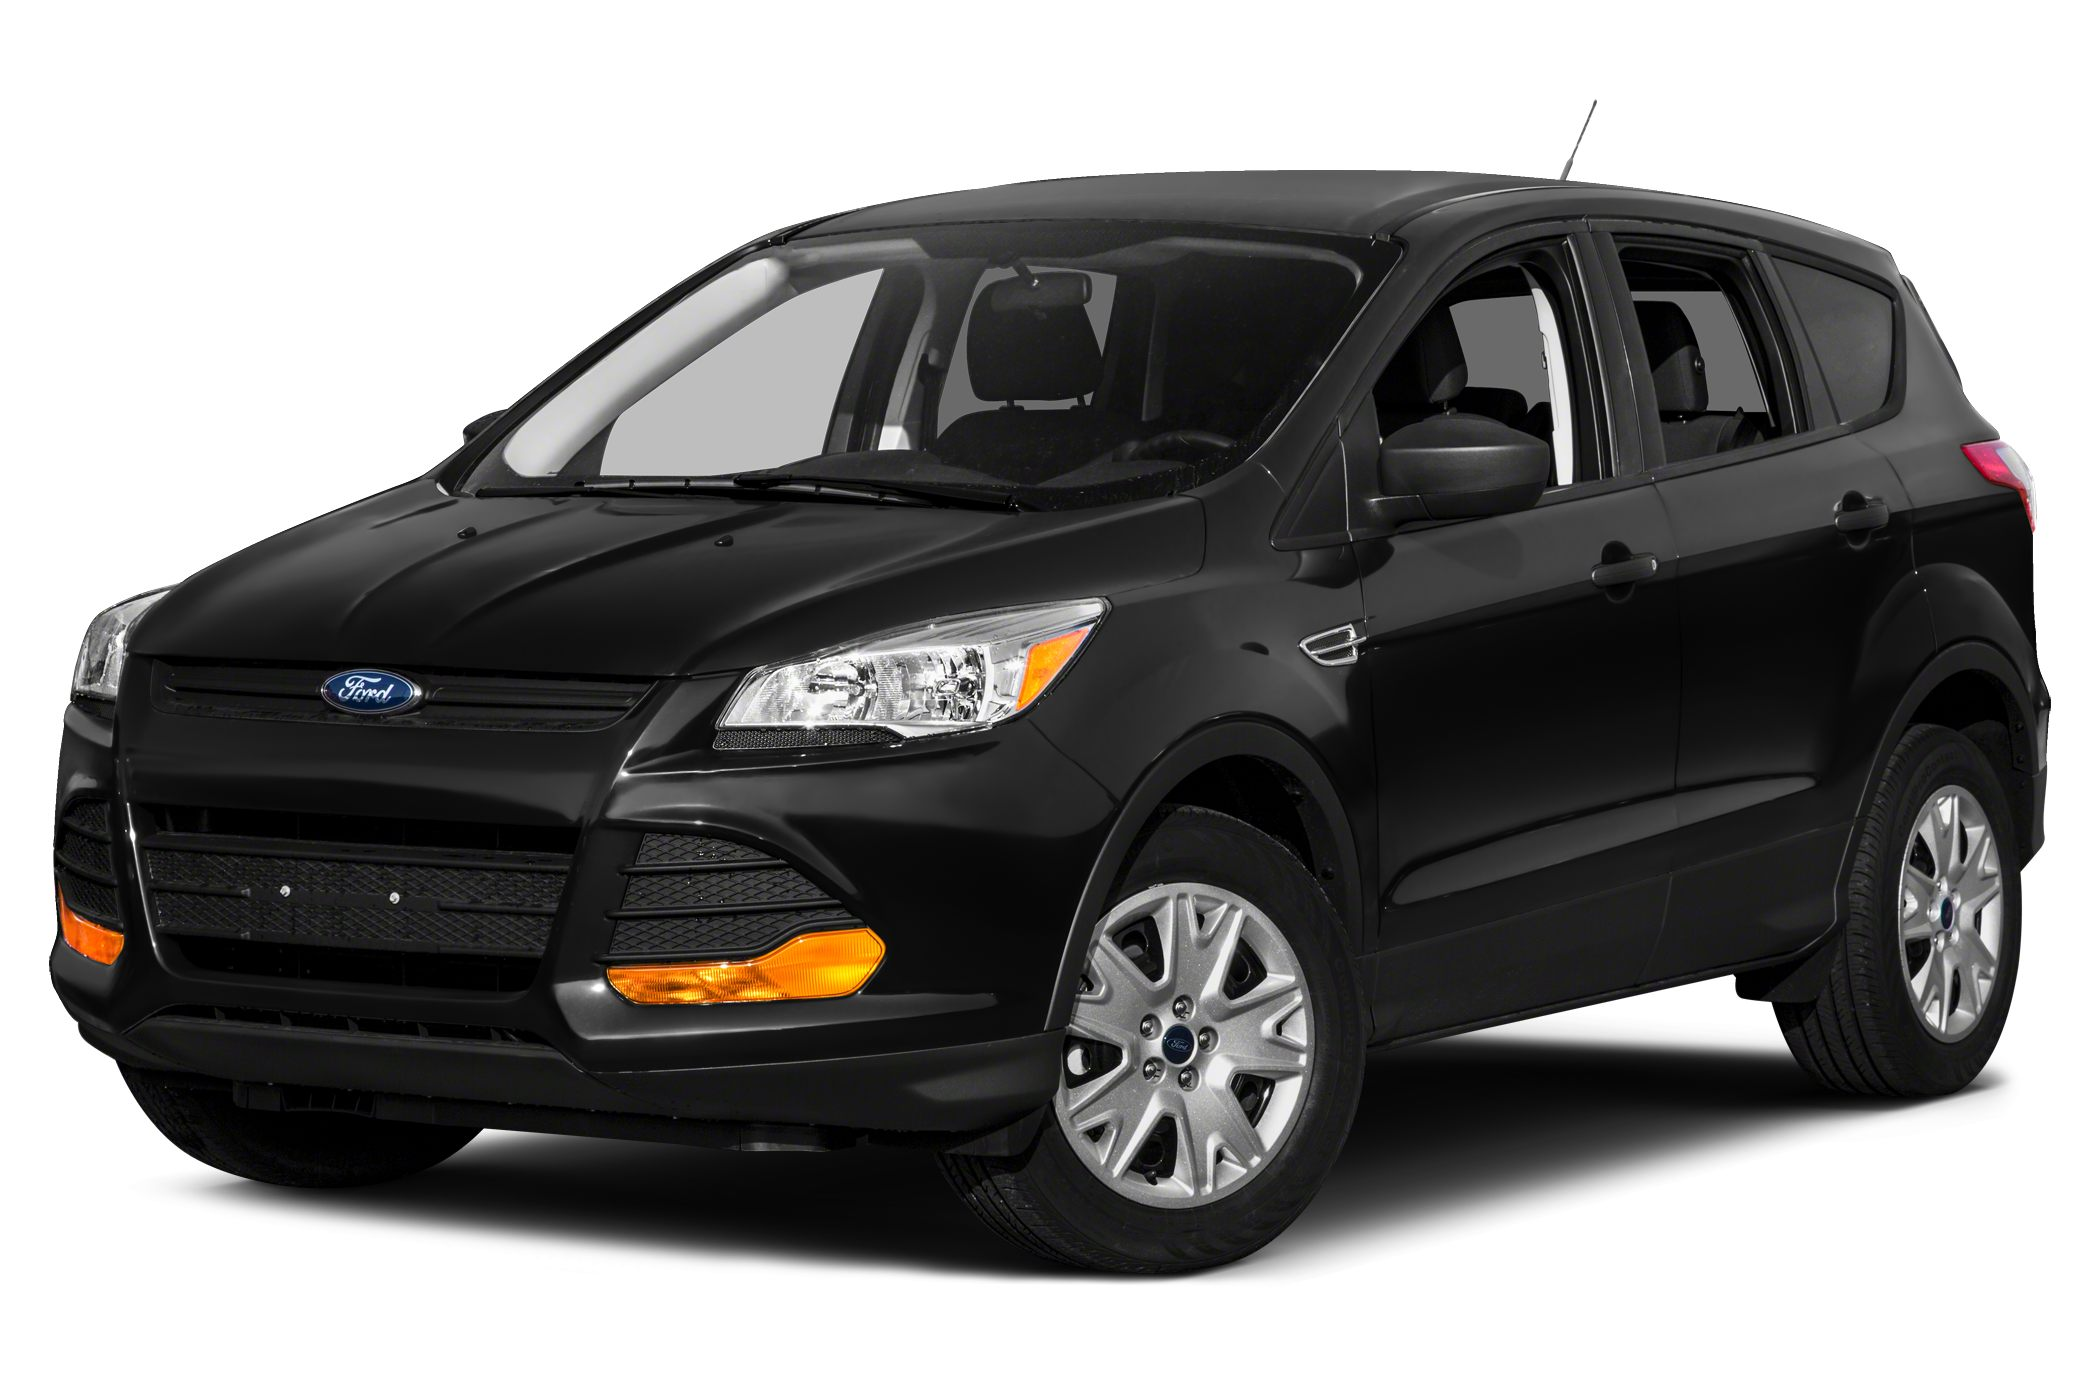 2013 Ford Escape SEL SUV for sale in Troy for $20,000 with 46,802 miles